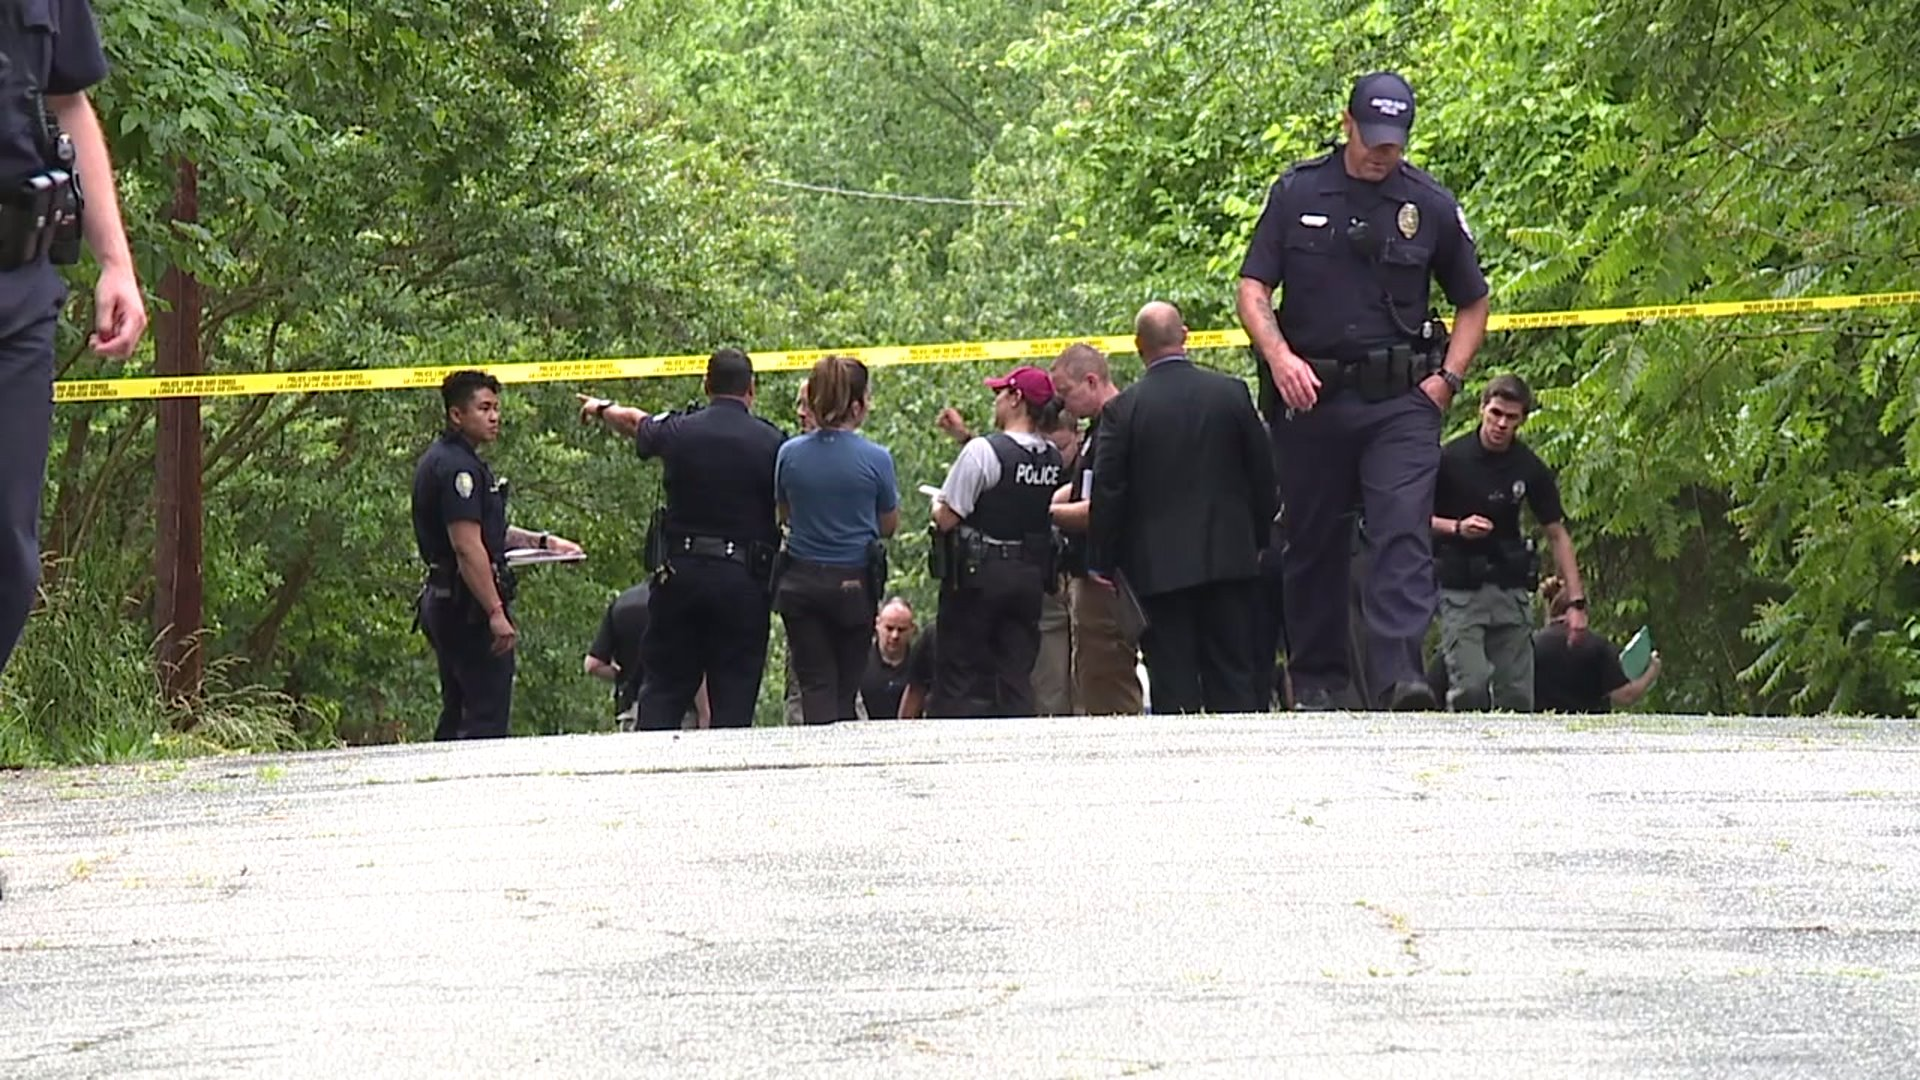 Winston-Salem police see rise in homicides involving women